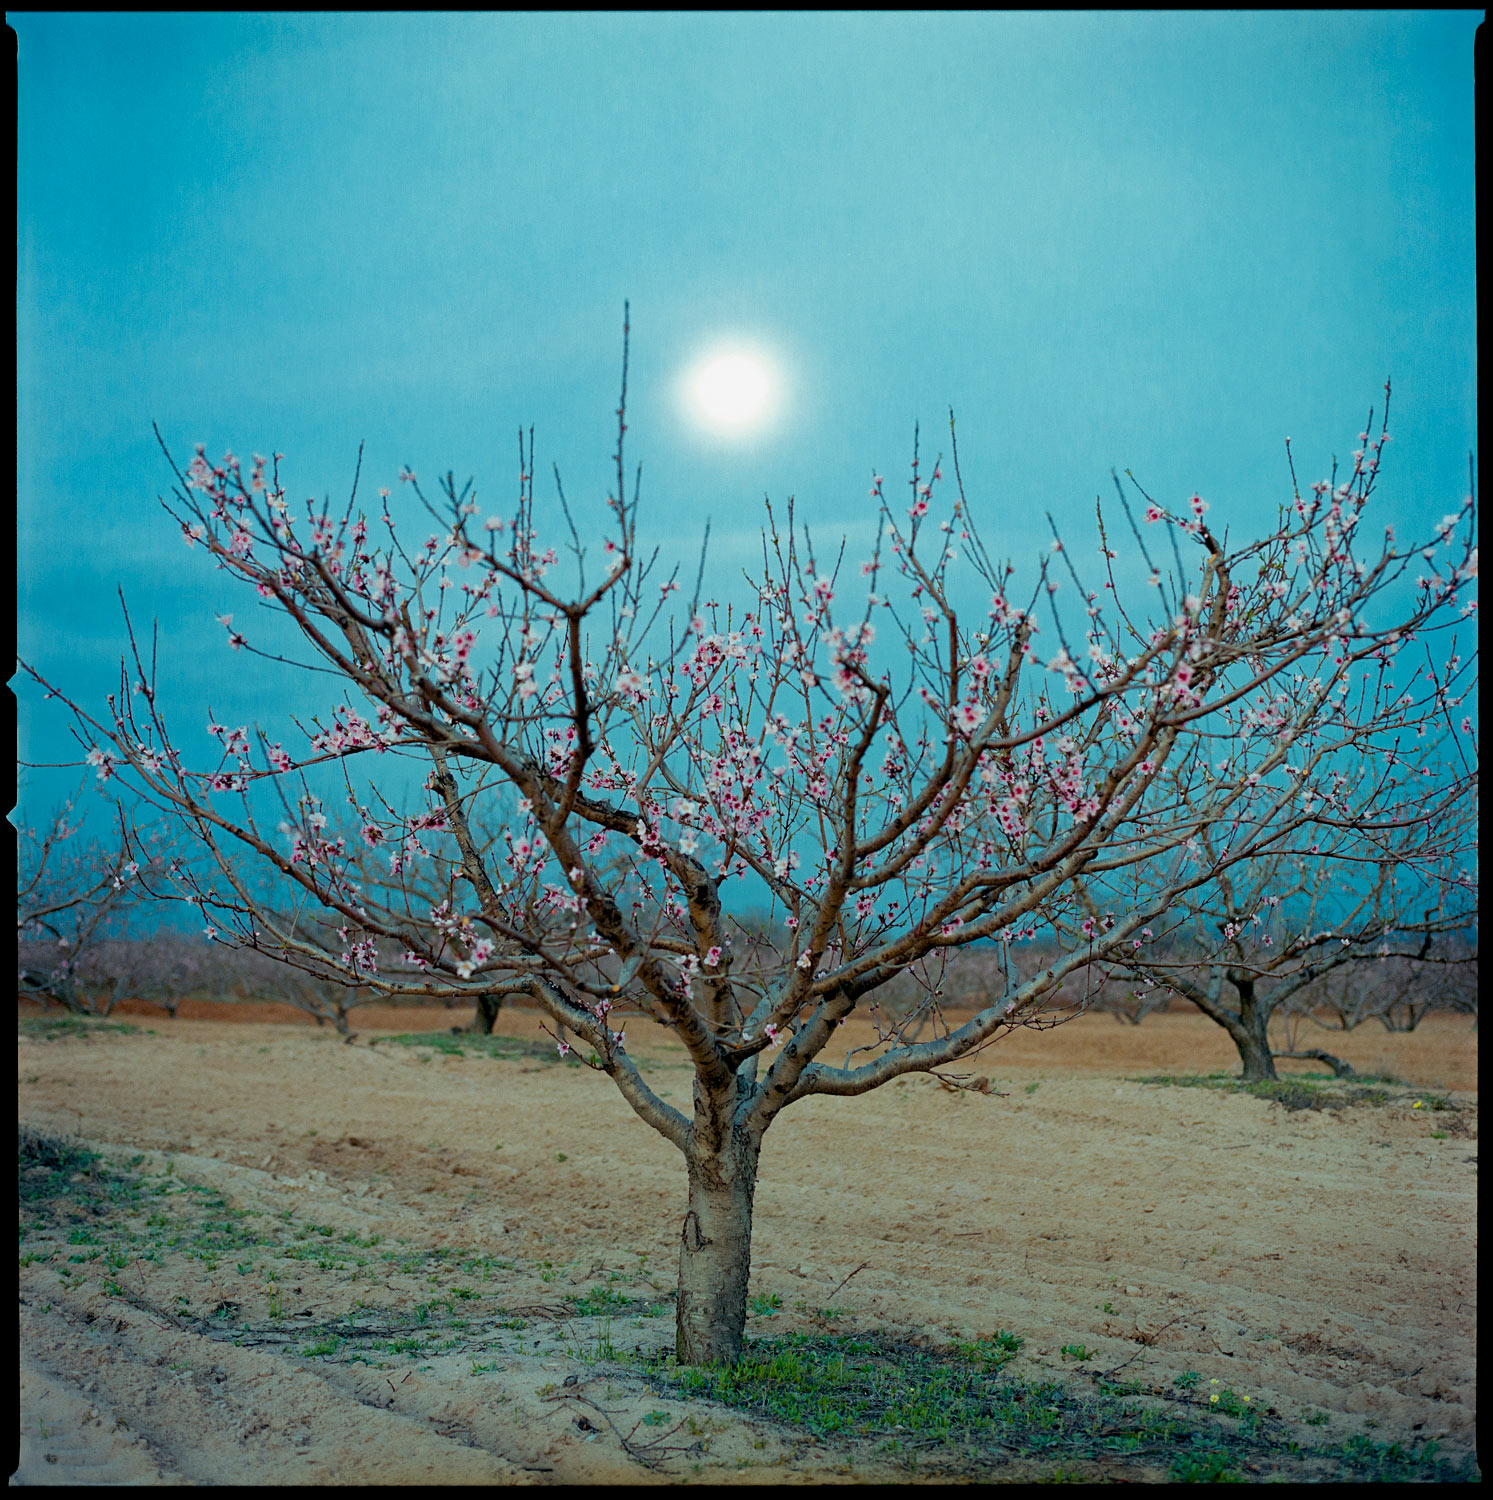 Peach tree in orchard at dusk with moon